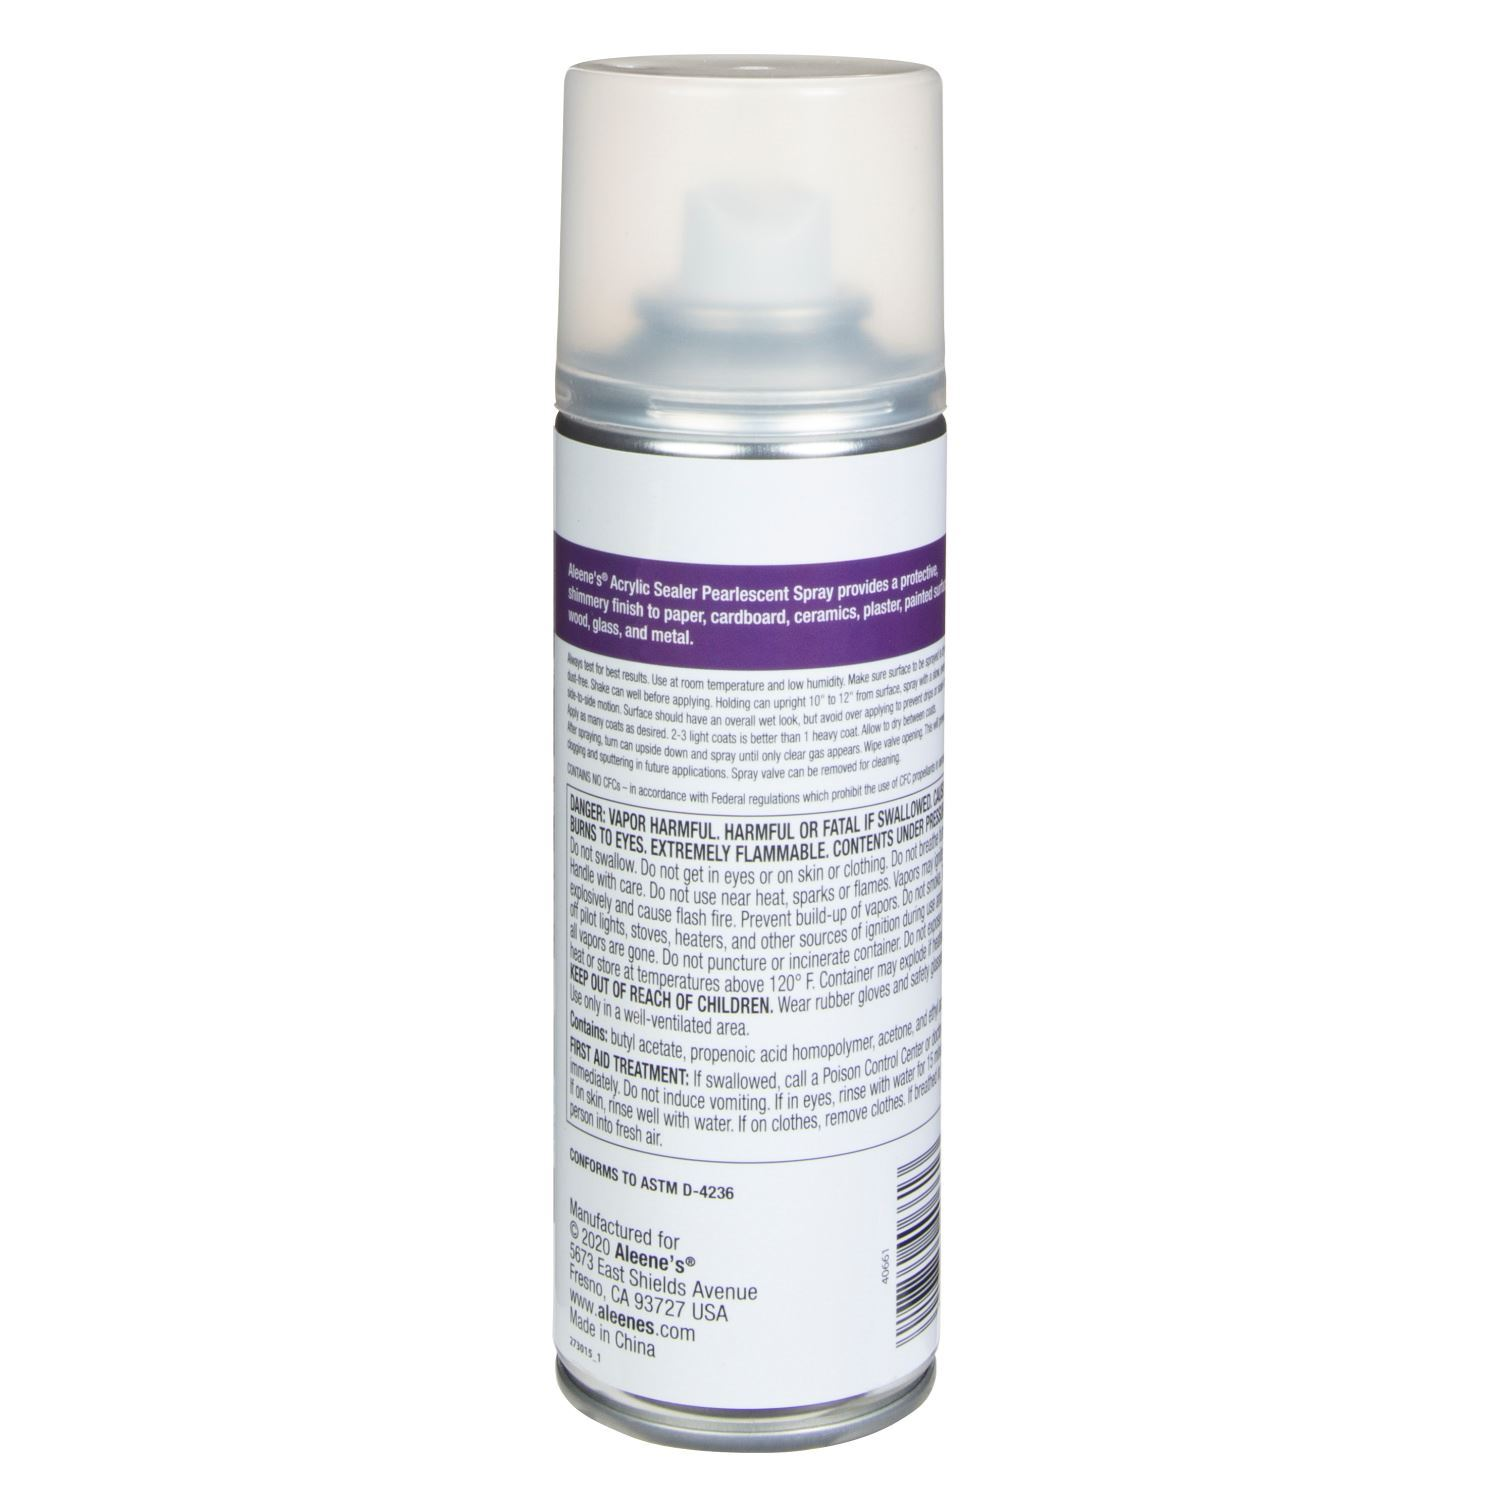 Aleene's Acrylic Sealer Pearlescent Finish 6 oz. back of can